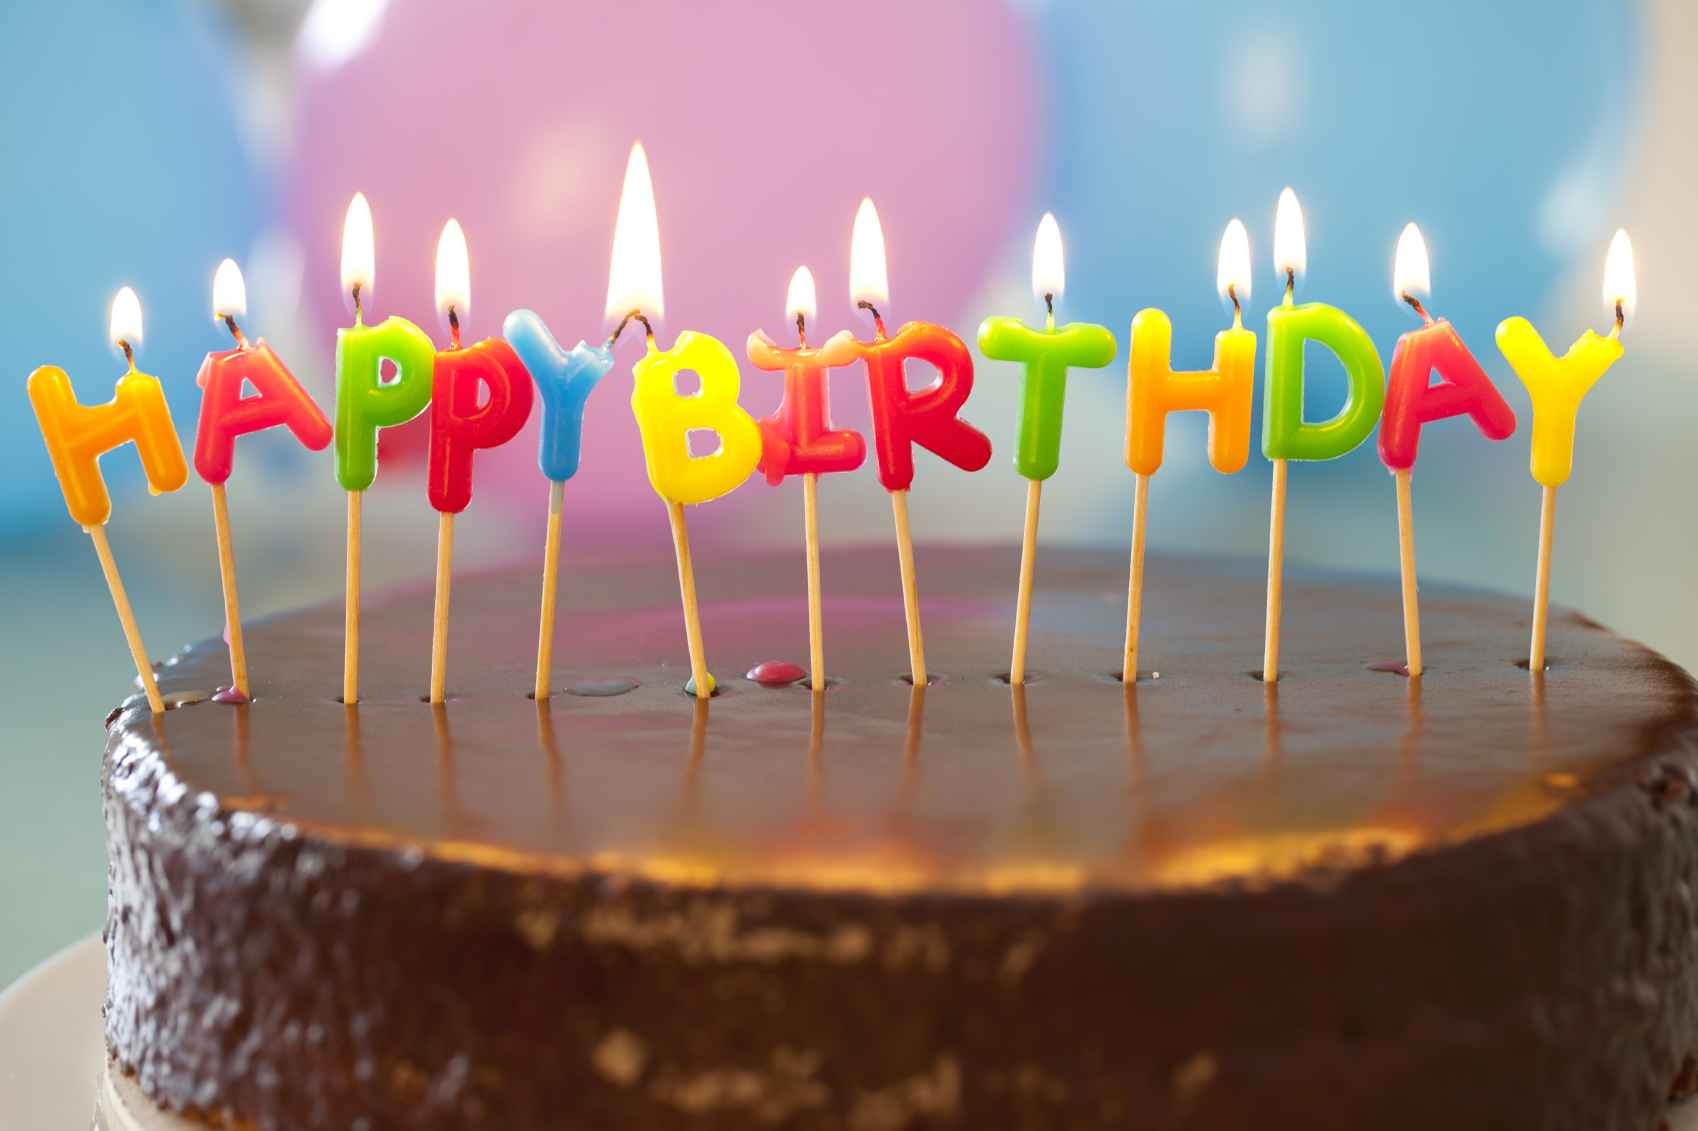 Some Tips To Make Your Beloved's Birthday Special